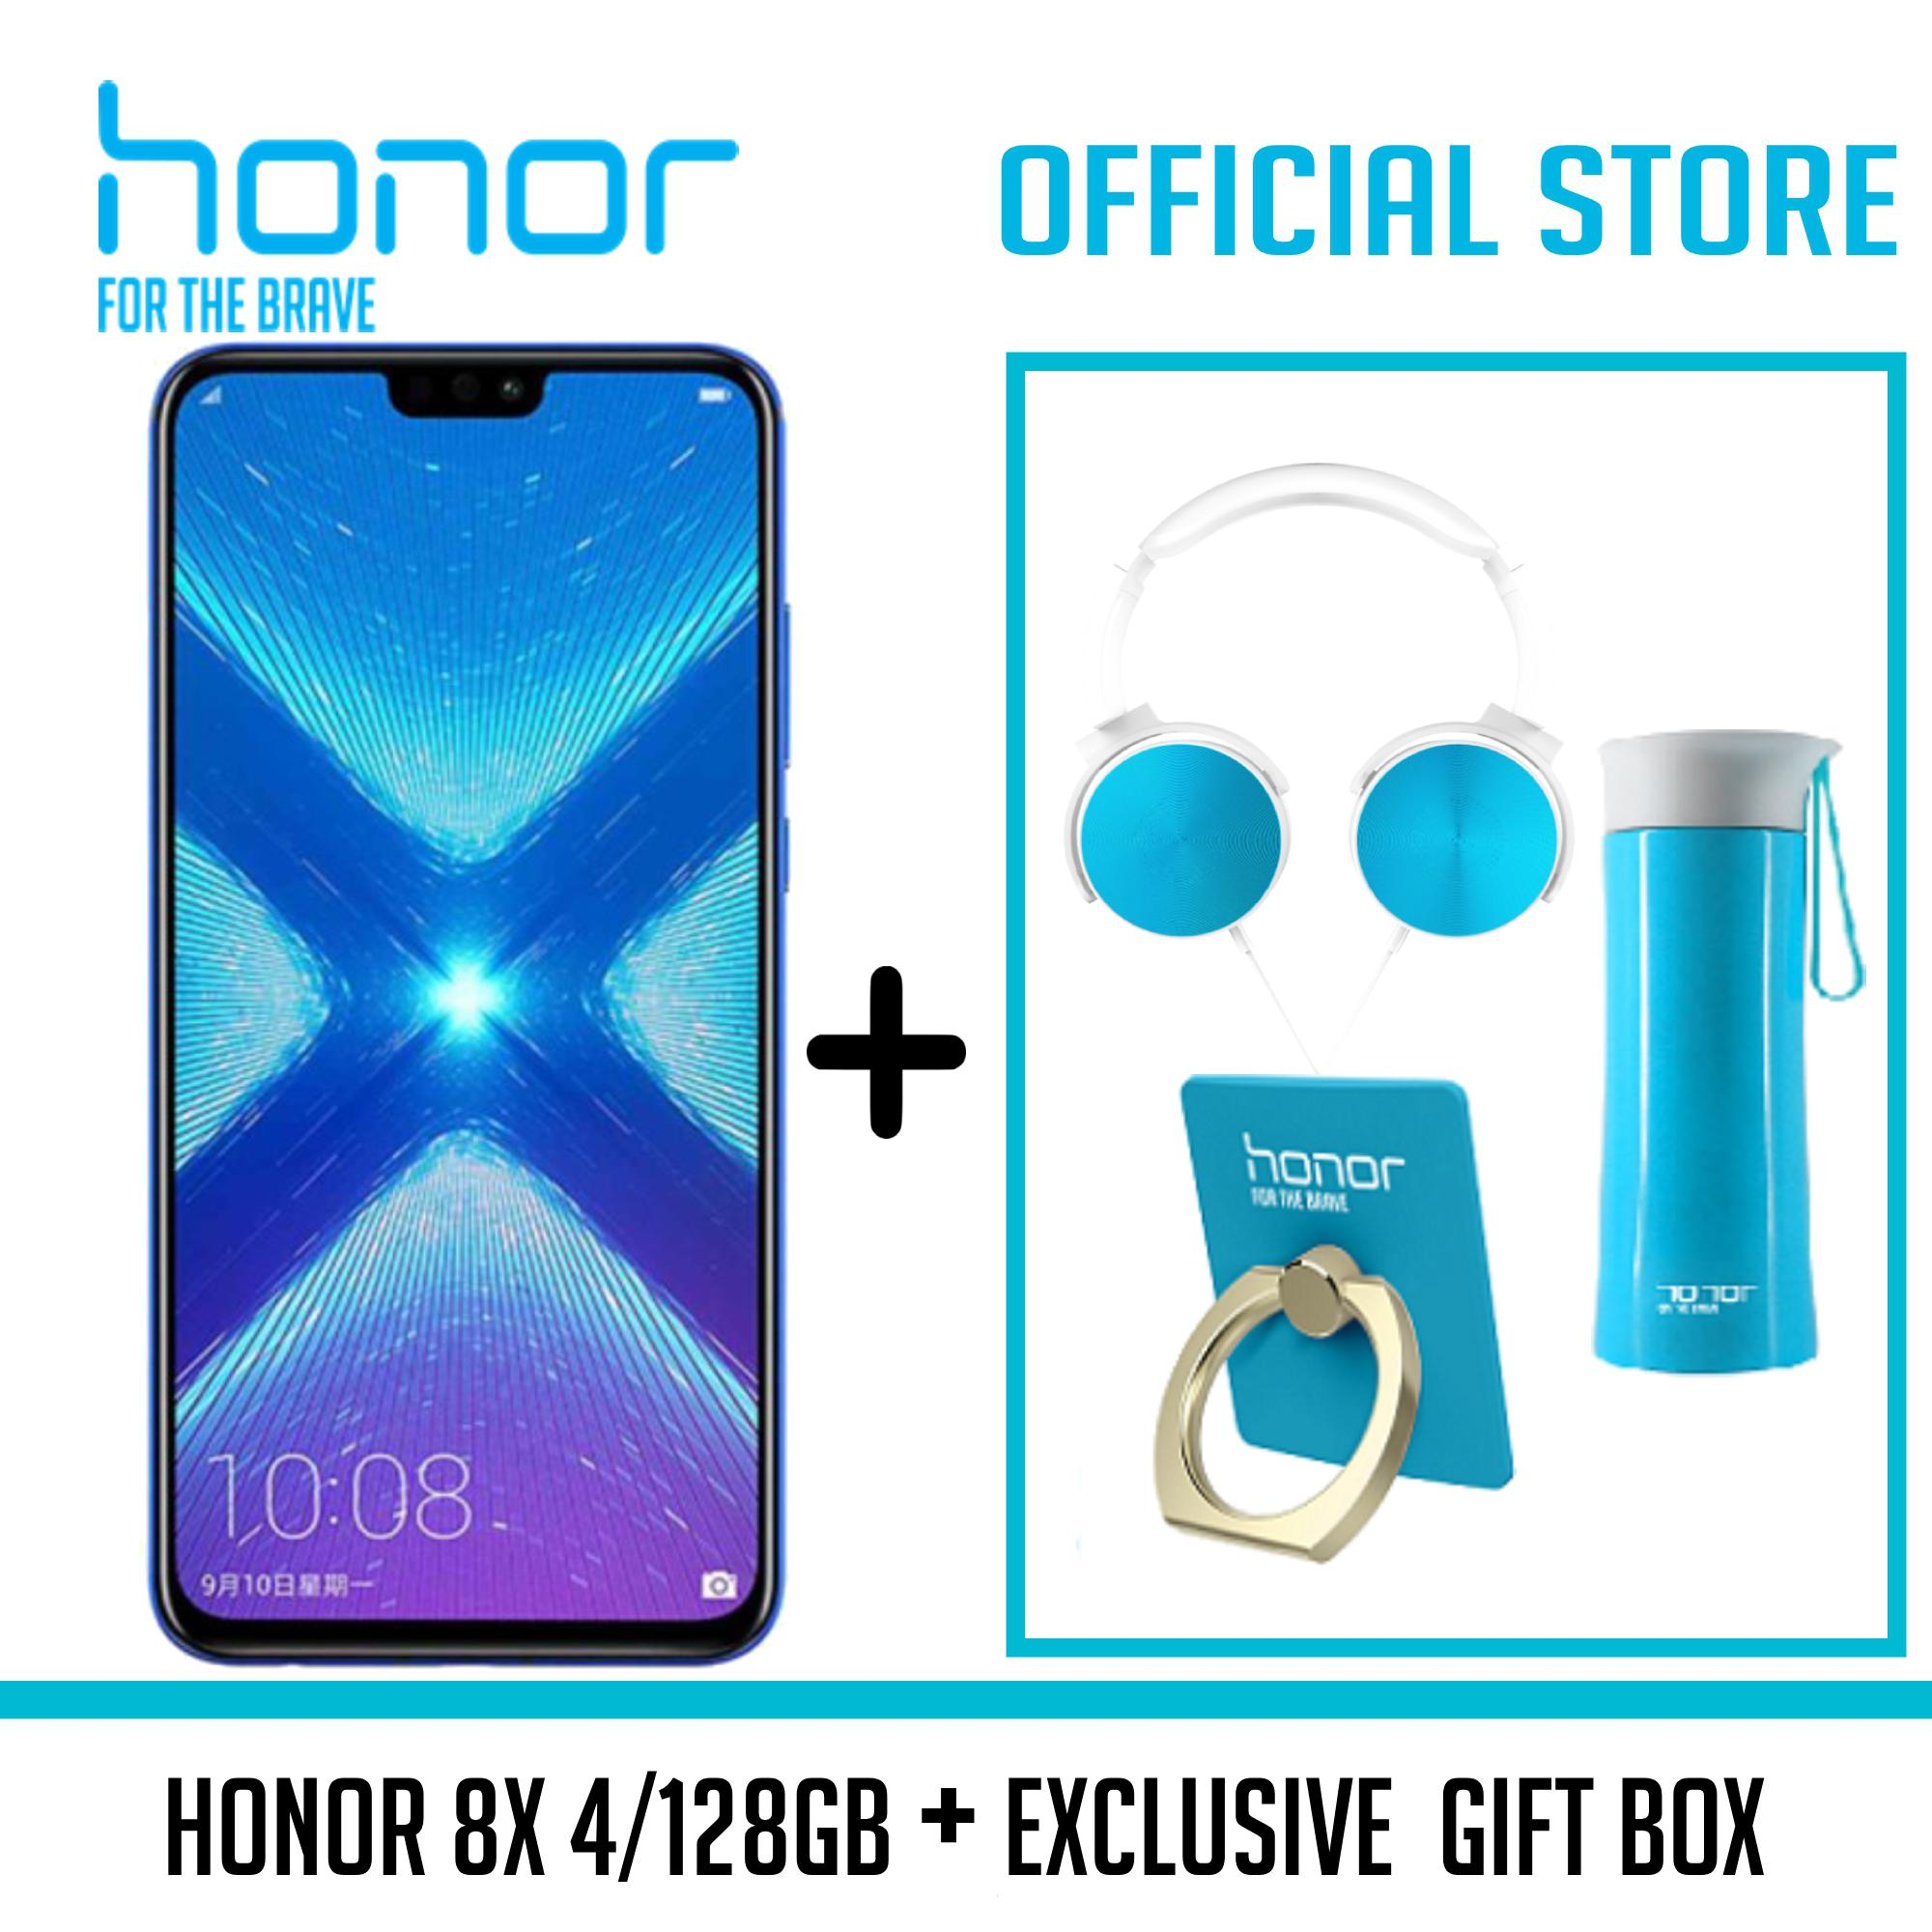 Honor 8X 4/128GB – Free Honor 8x Exclusive Gift Box